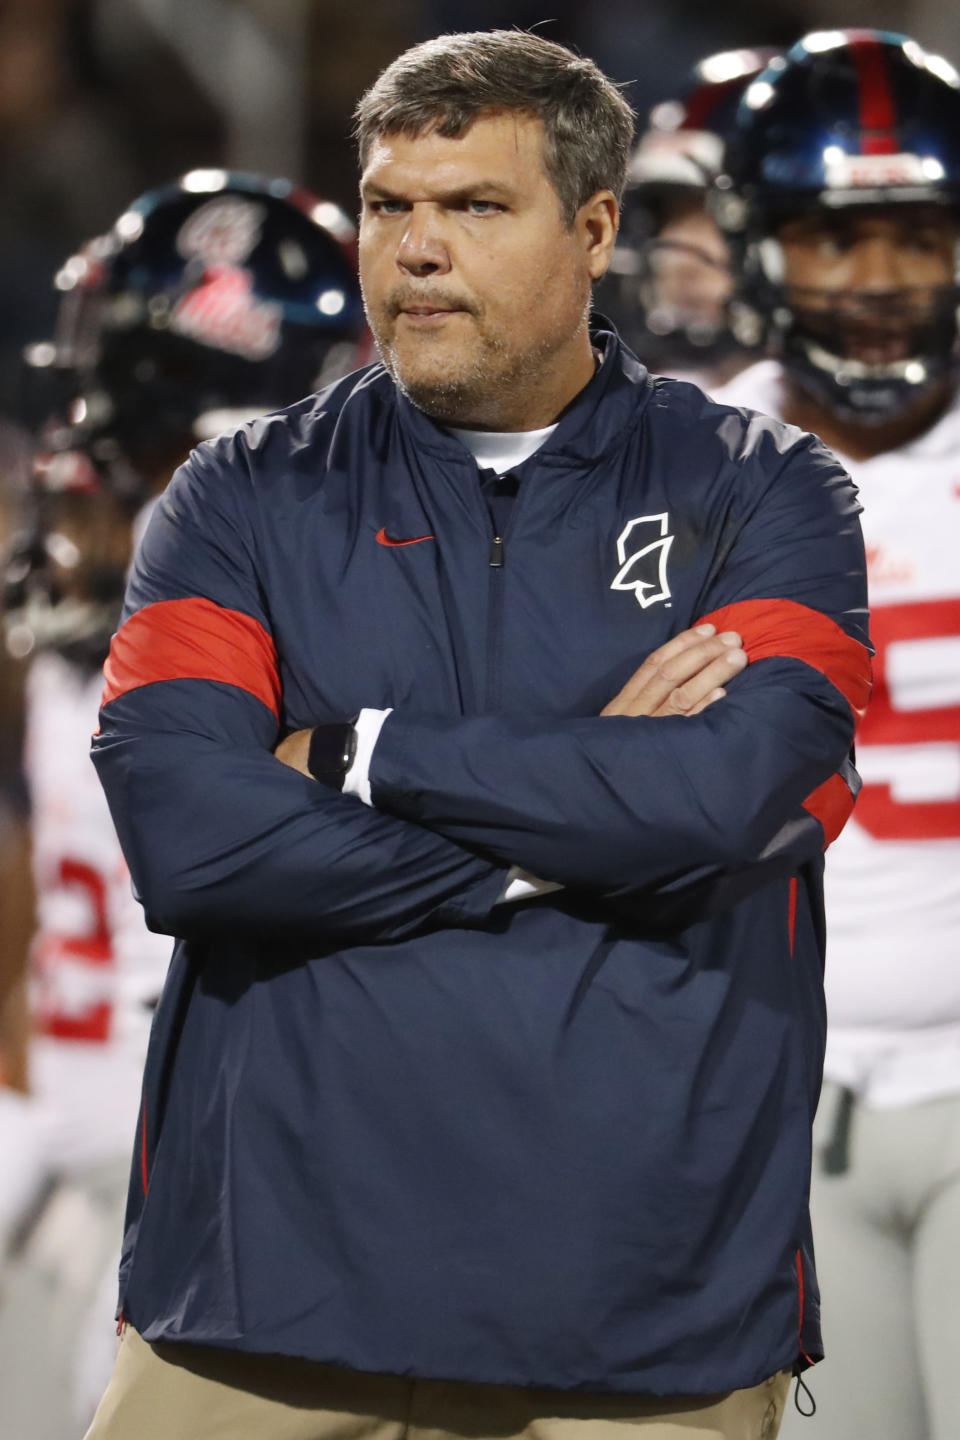 In this Nov. 28, 2019 photo, Mississippi head coach Matt Luke watches his players warm up prior to an NCAA college football game against Mississippi State, in Starkville, Miss. Mississippi has fired Luke, three days after his third non-winning season ended with an excruciating rivalry game loss. Athletic director Keith Carter said Sunday, Dec. 1, 2019 the decision to change coaches was made after evaluating the trajectory of the program and not seeing enough momentum on the field. (AP Photo/Rogelio V. Solis)